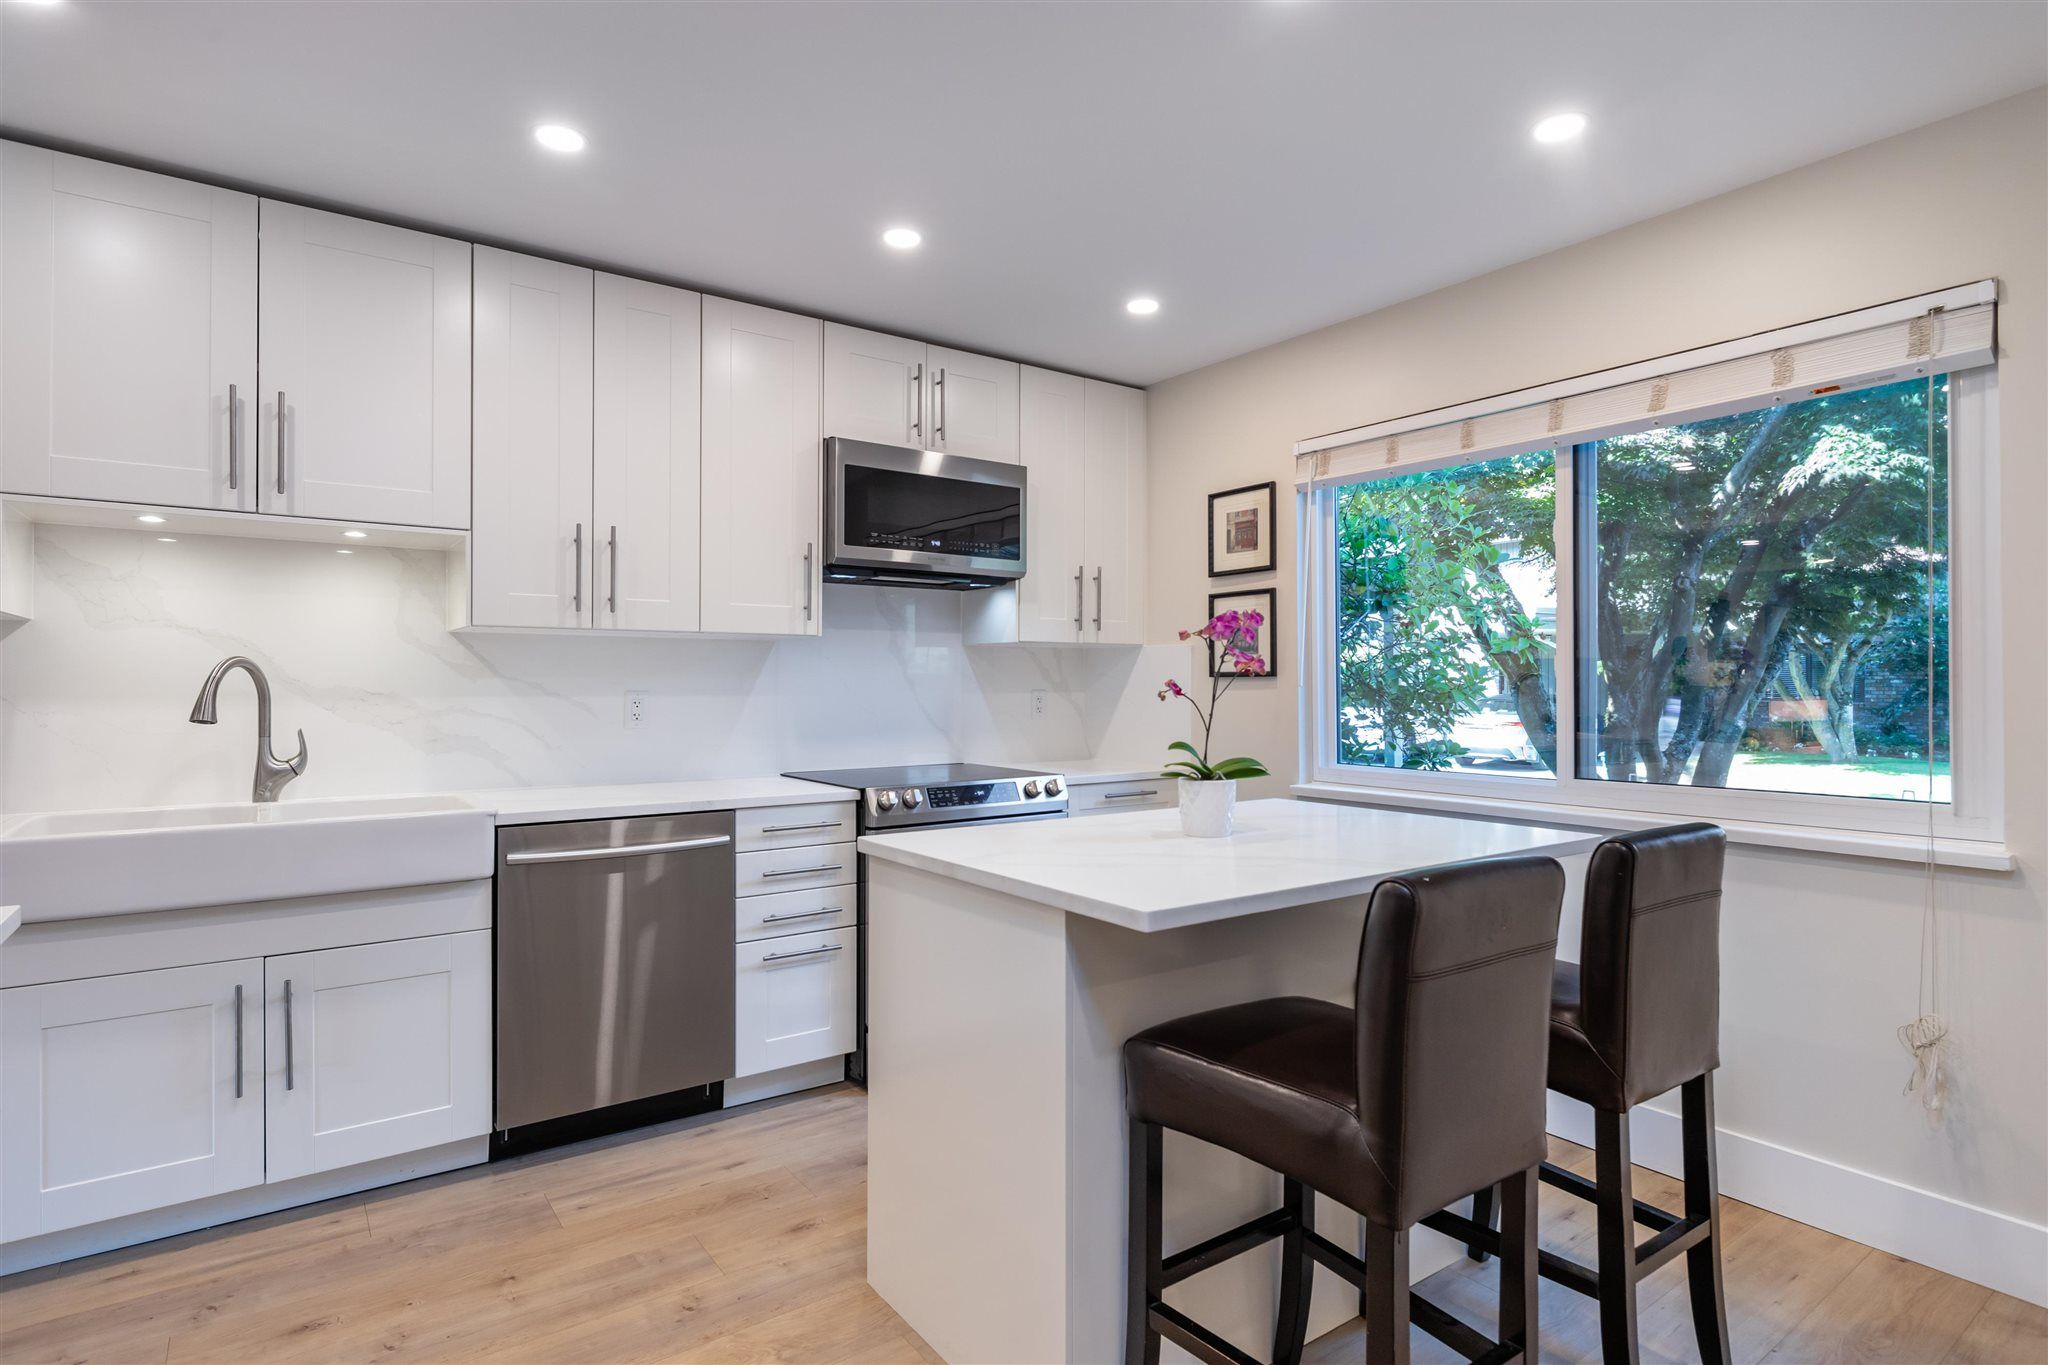 """Main Photo: 9 11771 KINGFISHER Drive in Richmond: Westwind Townhouse for sale in """"Somerset Mews"""" : MLS®# R2601333"""